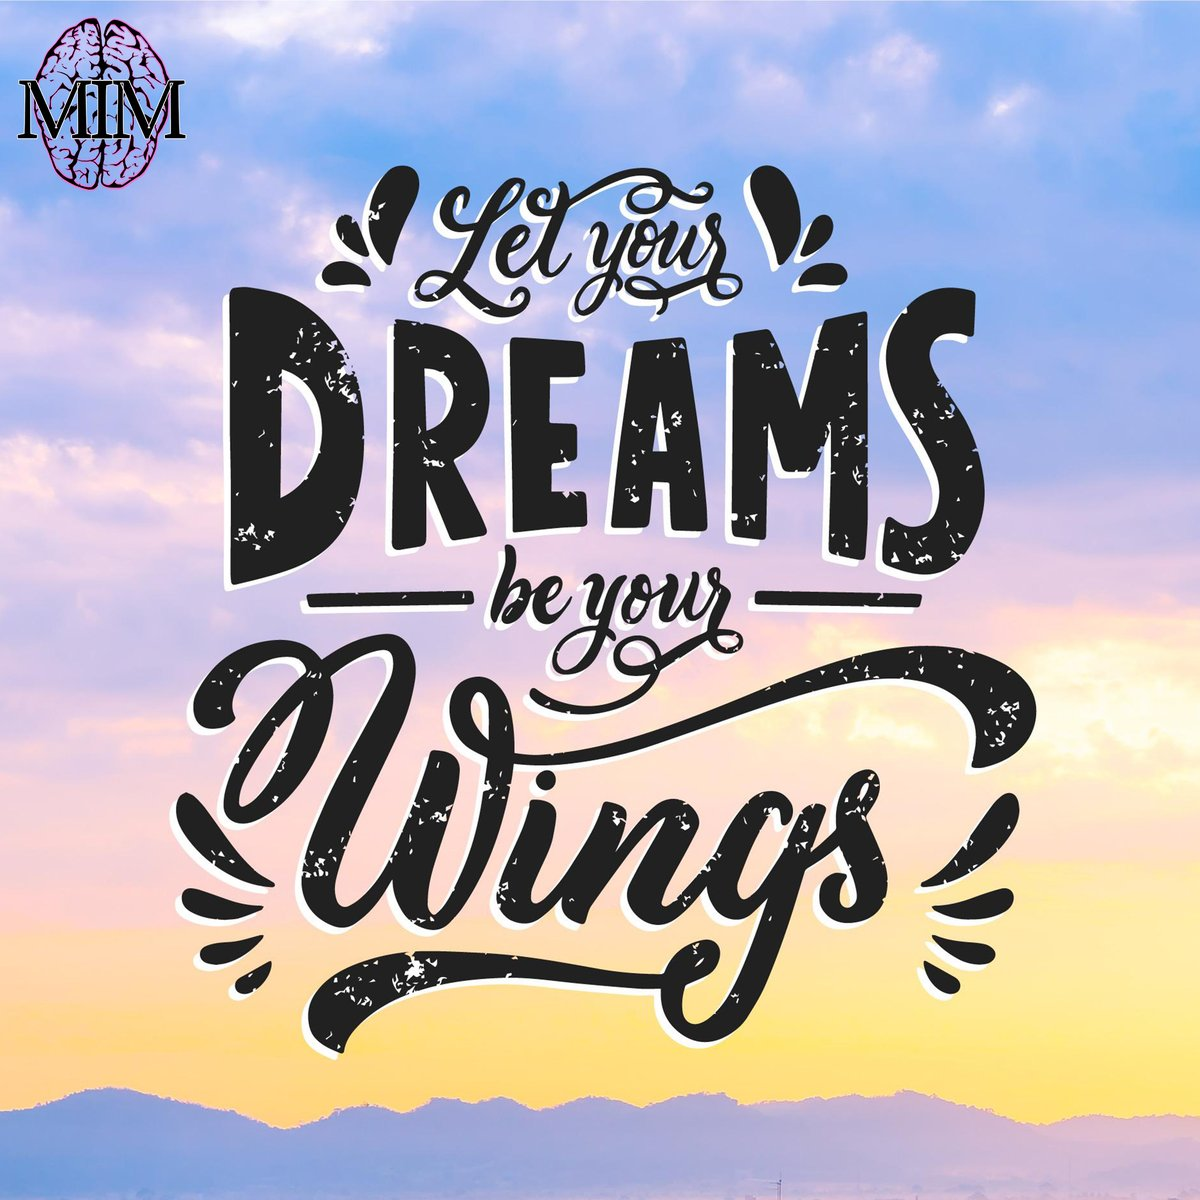 𝑳𝒆𝒕 𝒚𝒐𝒖𝒓 𝑫𝒓𝒆𝒂𝒎𝒔 𝒃𝒆 𝒚𝒐𝒖𝒓 𝑾𝒊𝒏𝒈𝒔 . 𝗩𝗶𝘀𝗶𝘁 𝘂𝘀:  . #MyInnerMindset  #wings #thepositivediaries #bepostive #positivemindset #quote #positiveminds #dreams #USA #Motivation #quotes